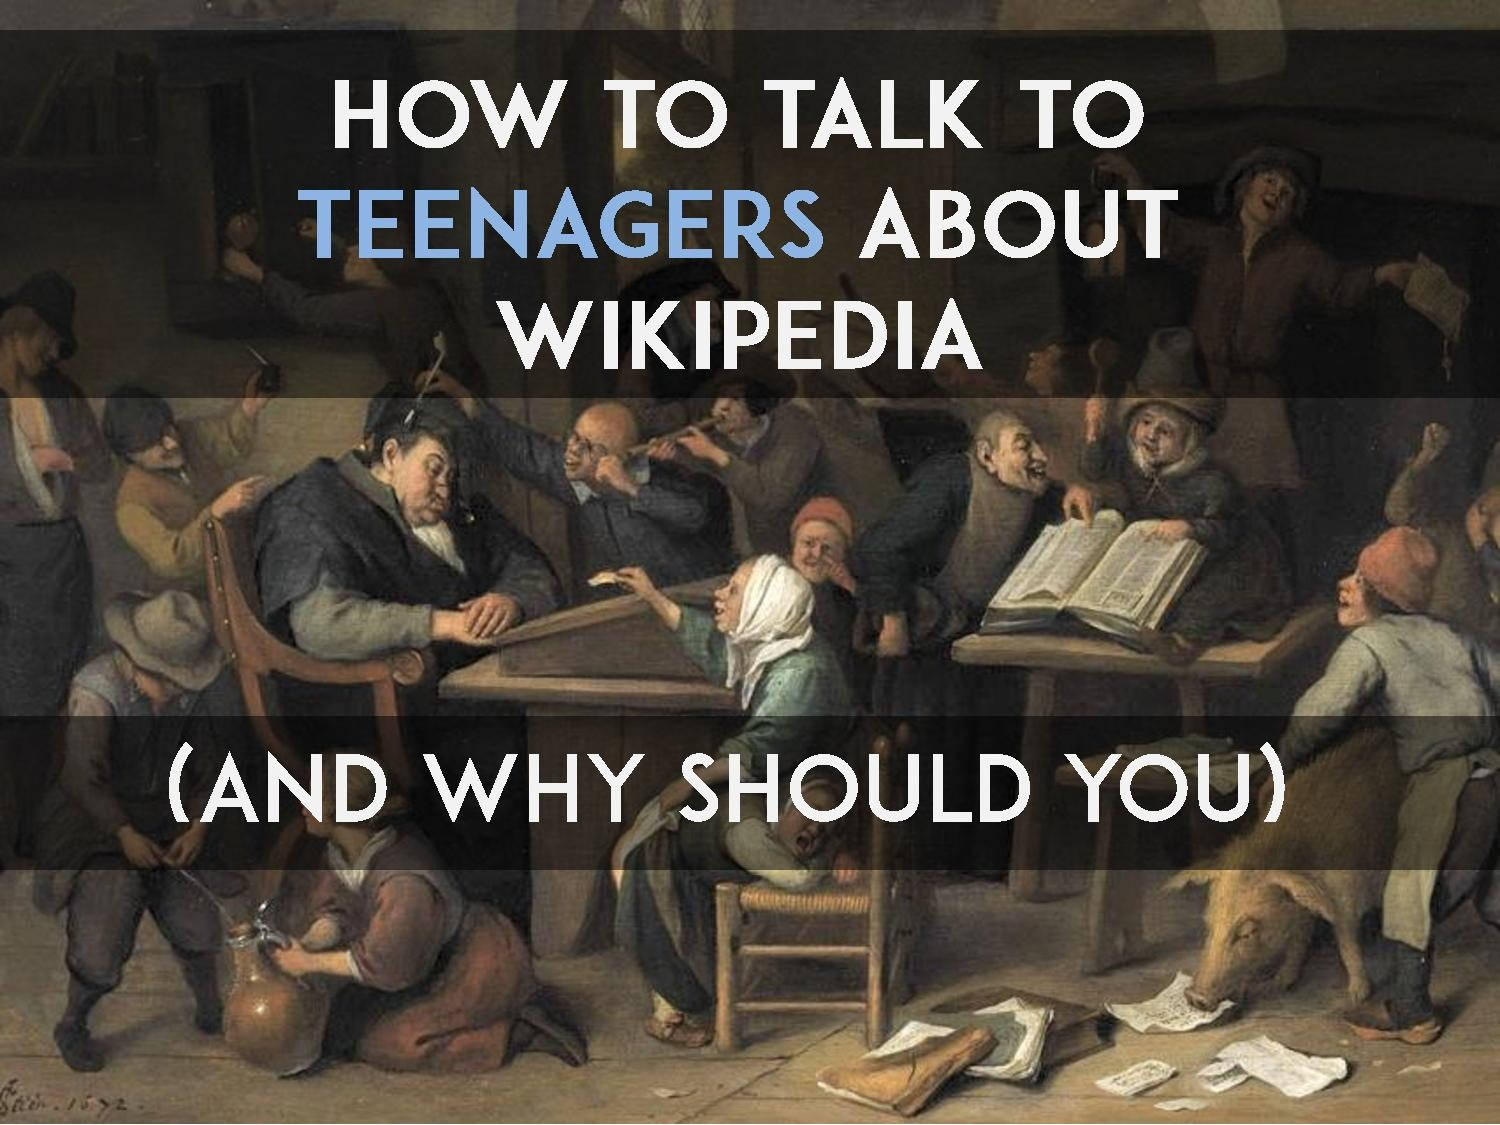 How to talk to teenagers v2.pdf